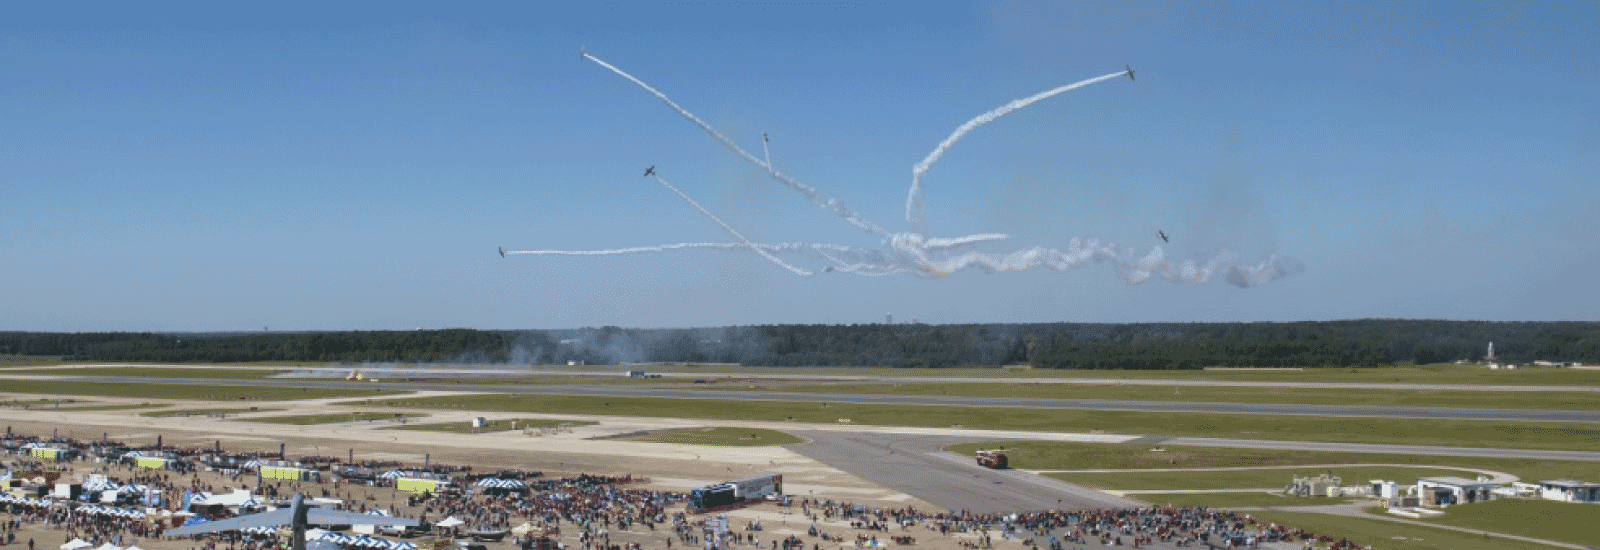 19 Of the Best NAS Oceana Things to Do